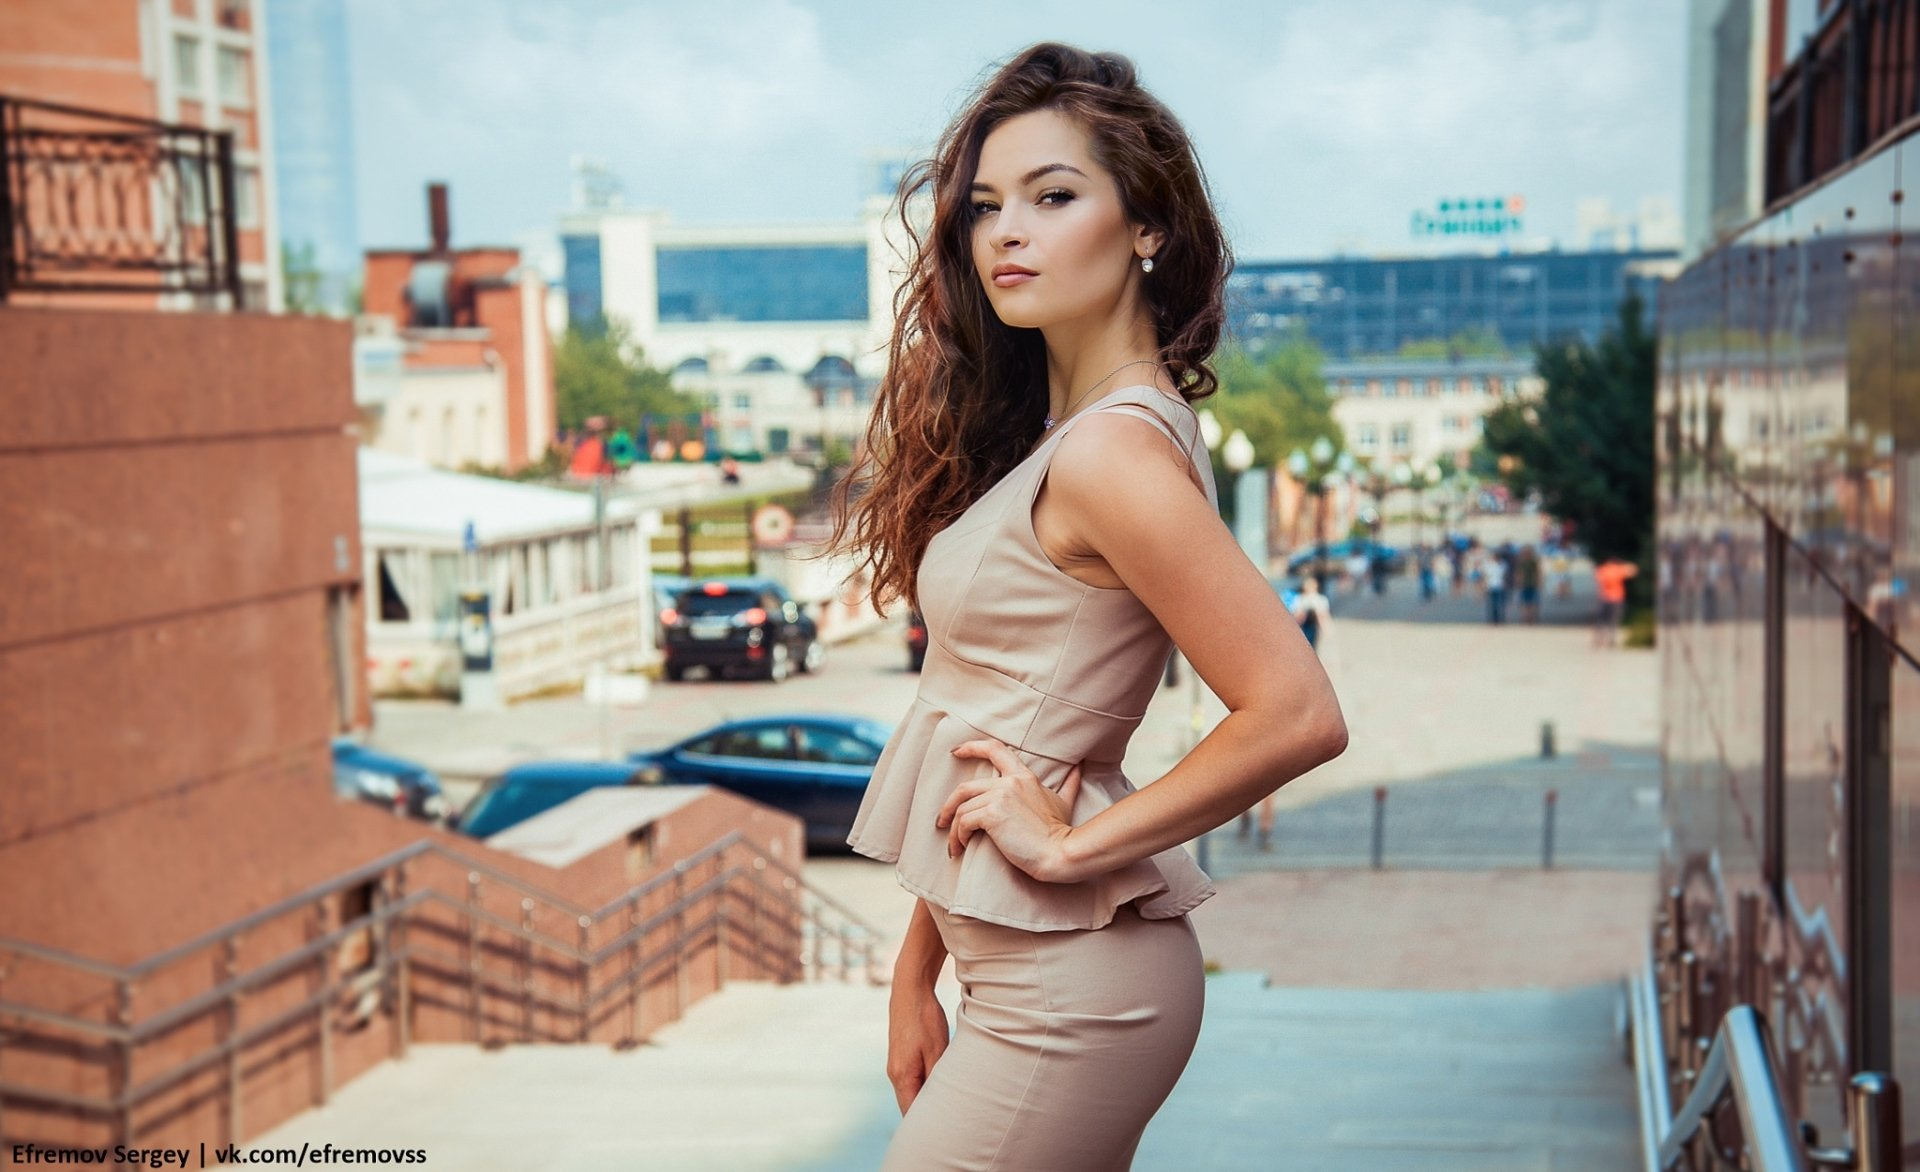 Women - Model  Woman Girl Brunette Depth Of Field Wallpaper